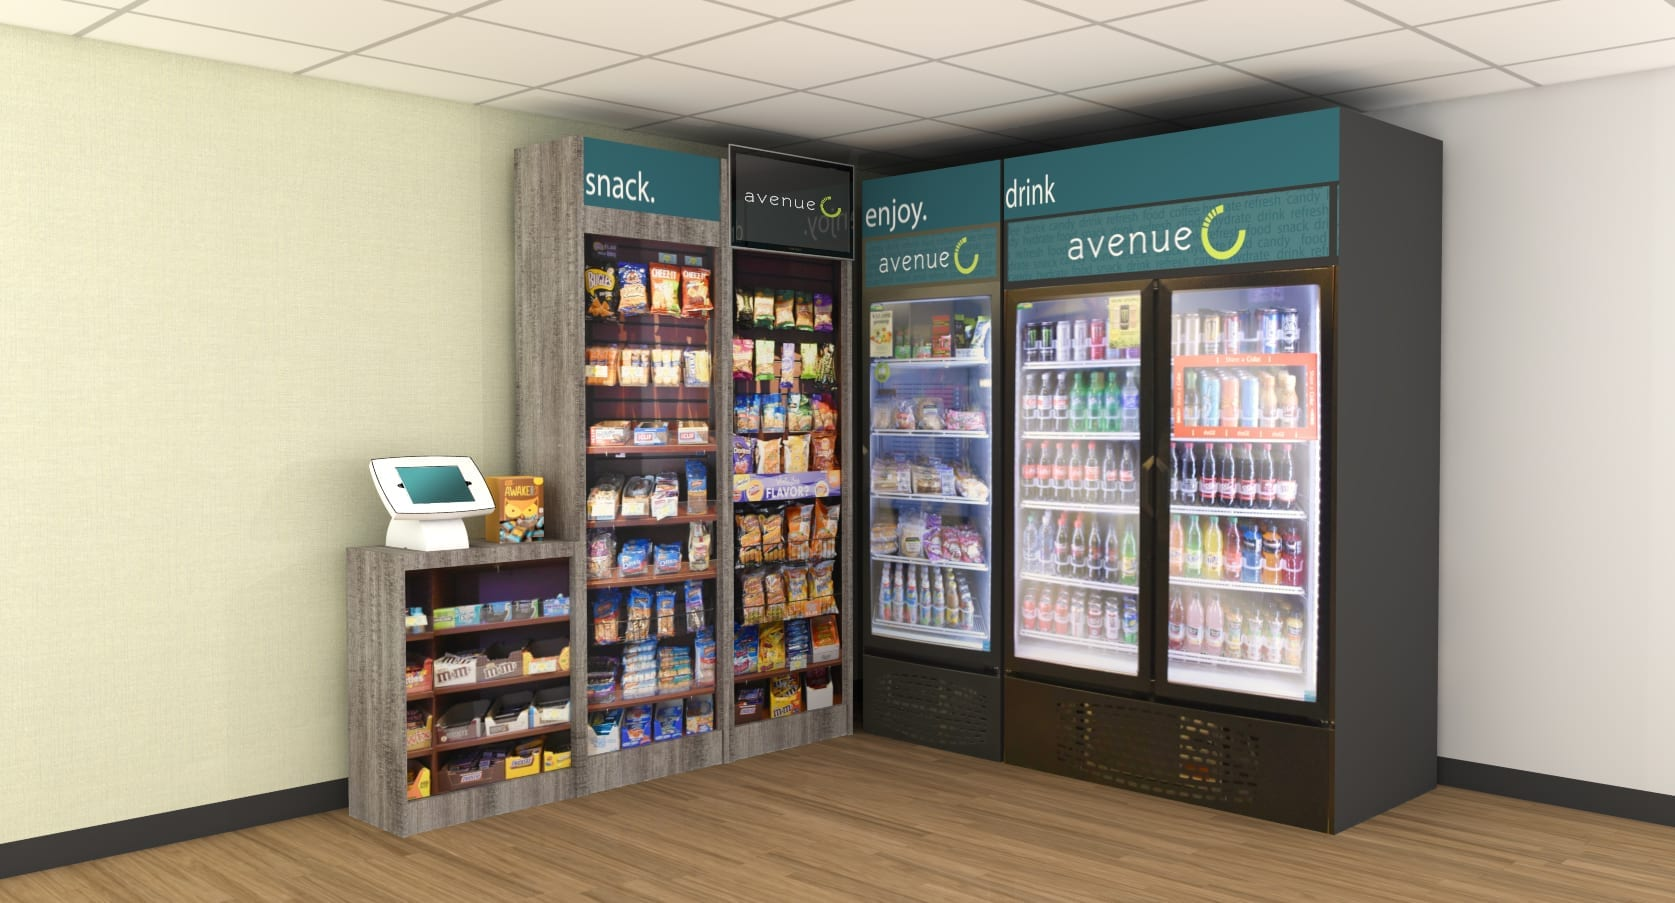 Avenue C brand fully stocked beverage cooler beside a chip rack and a self service touch screen checkout device